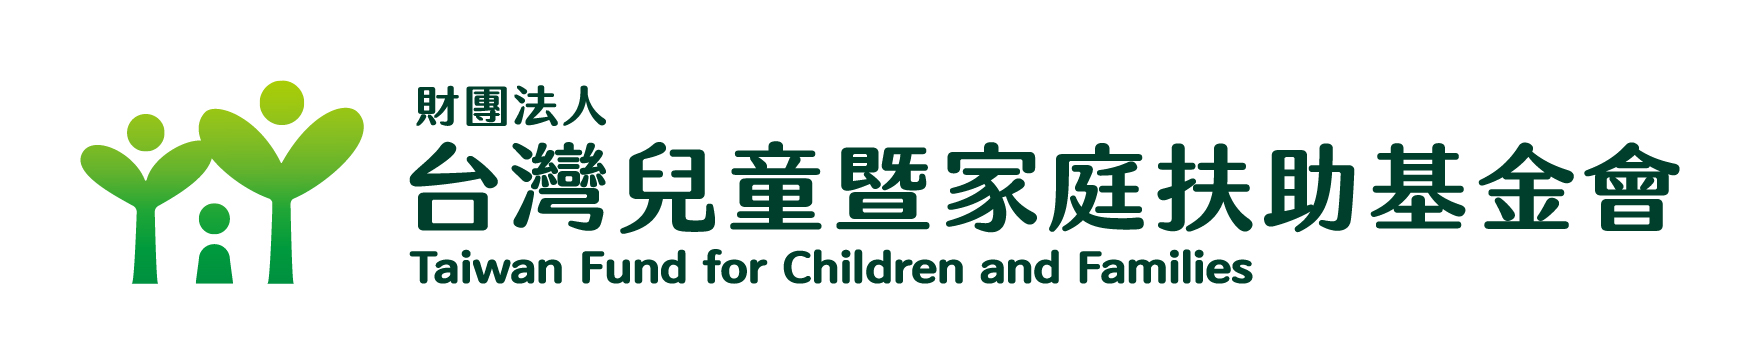 Taiwan Fund for Children and Families